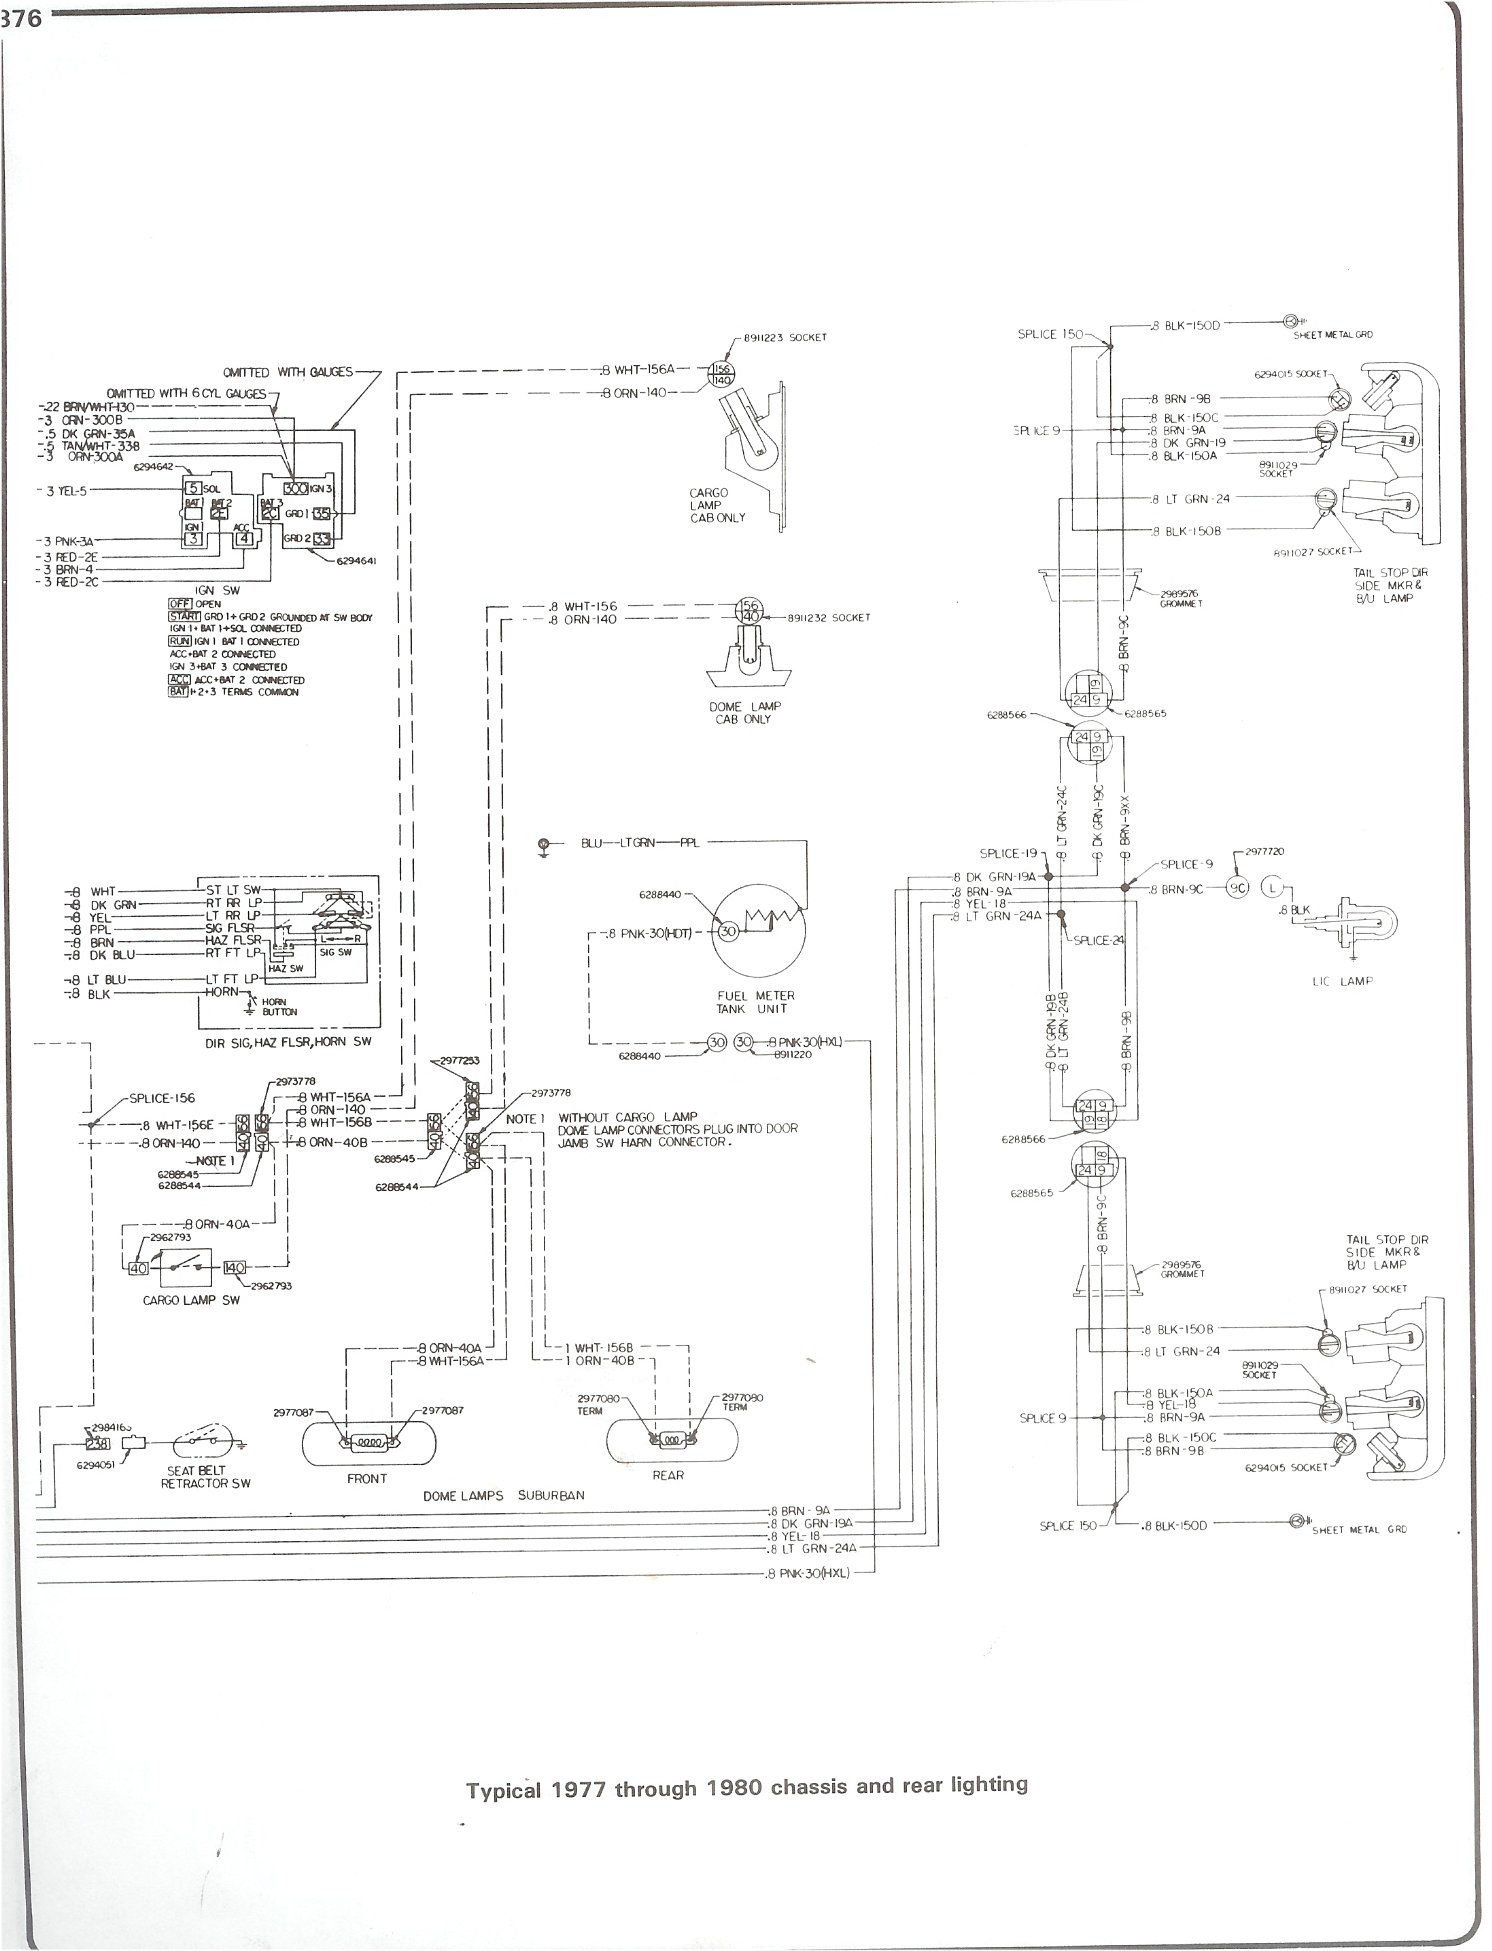 1988 Chevy Van Alternator Wiring Trusted Diagram 87 350 Free Download Complete 73 Diagrams Starter